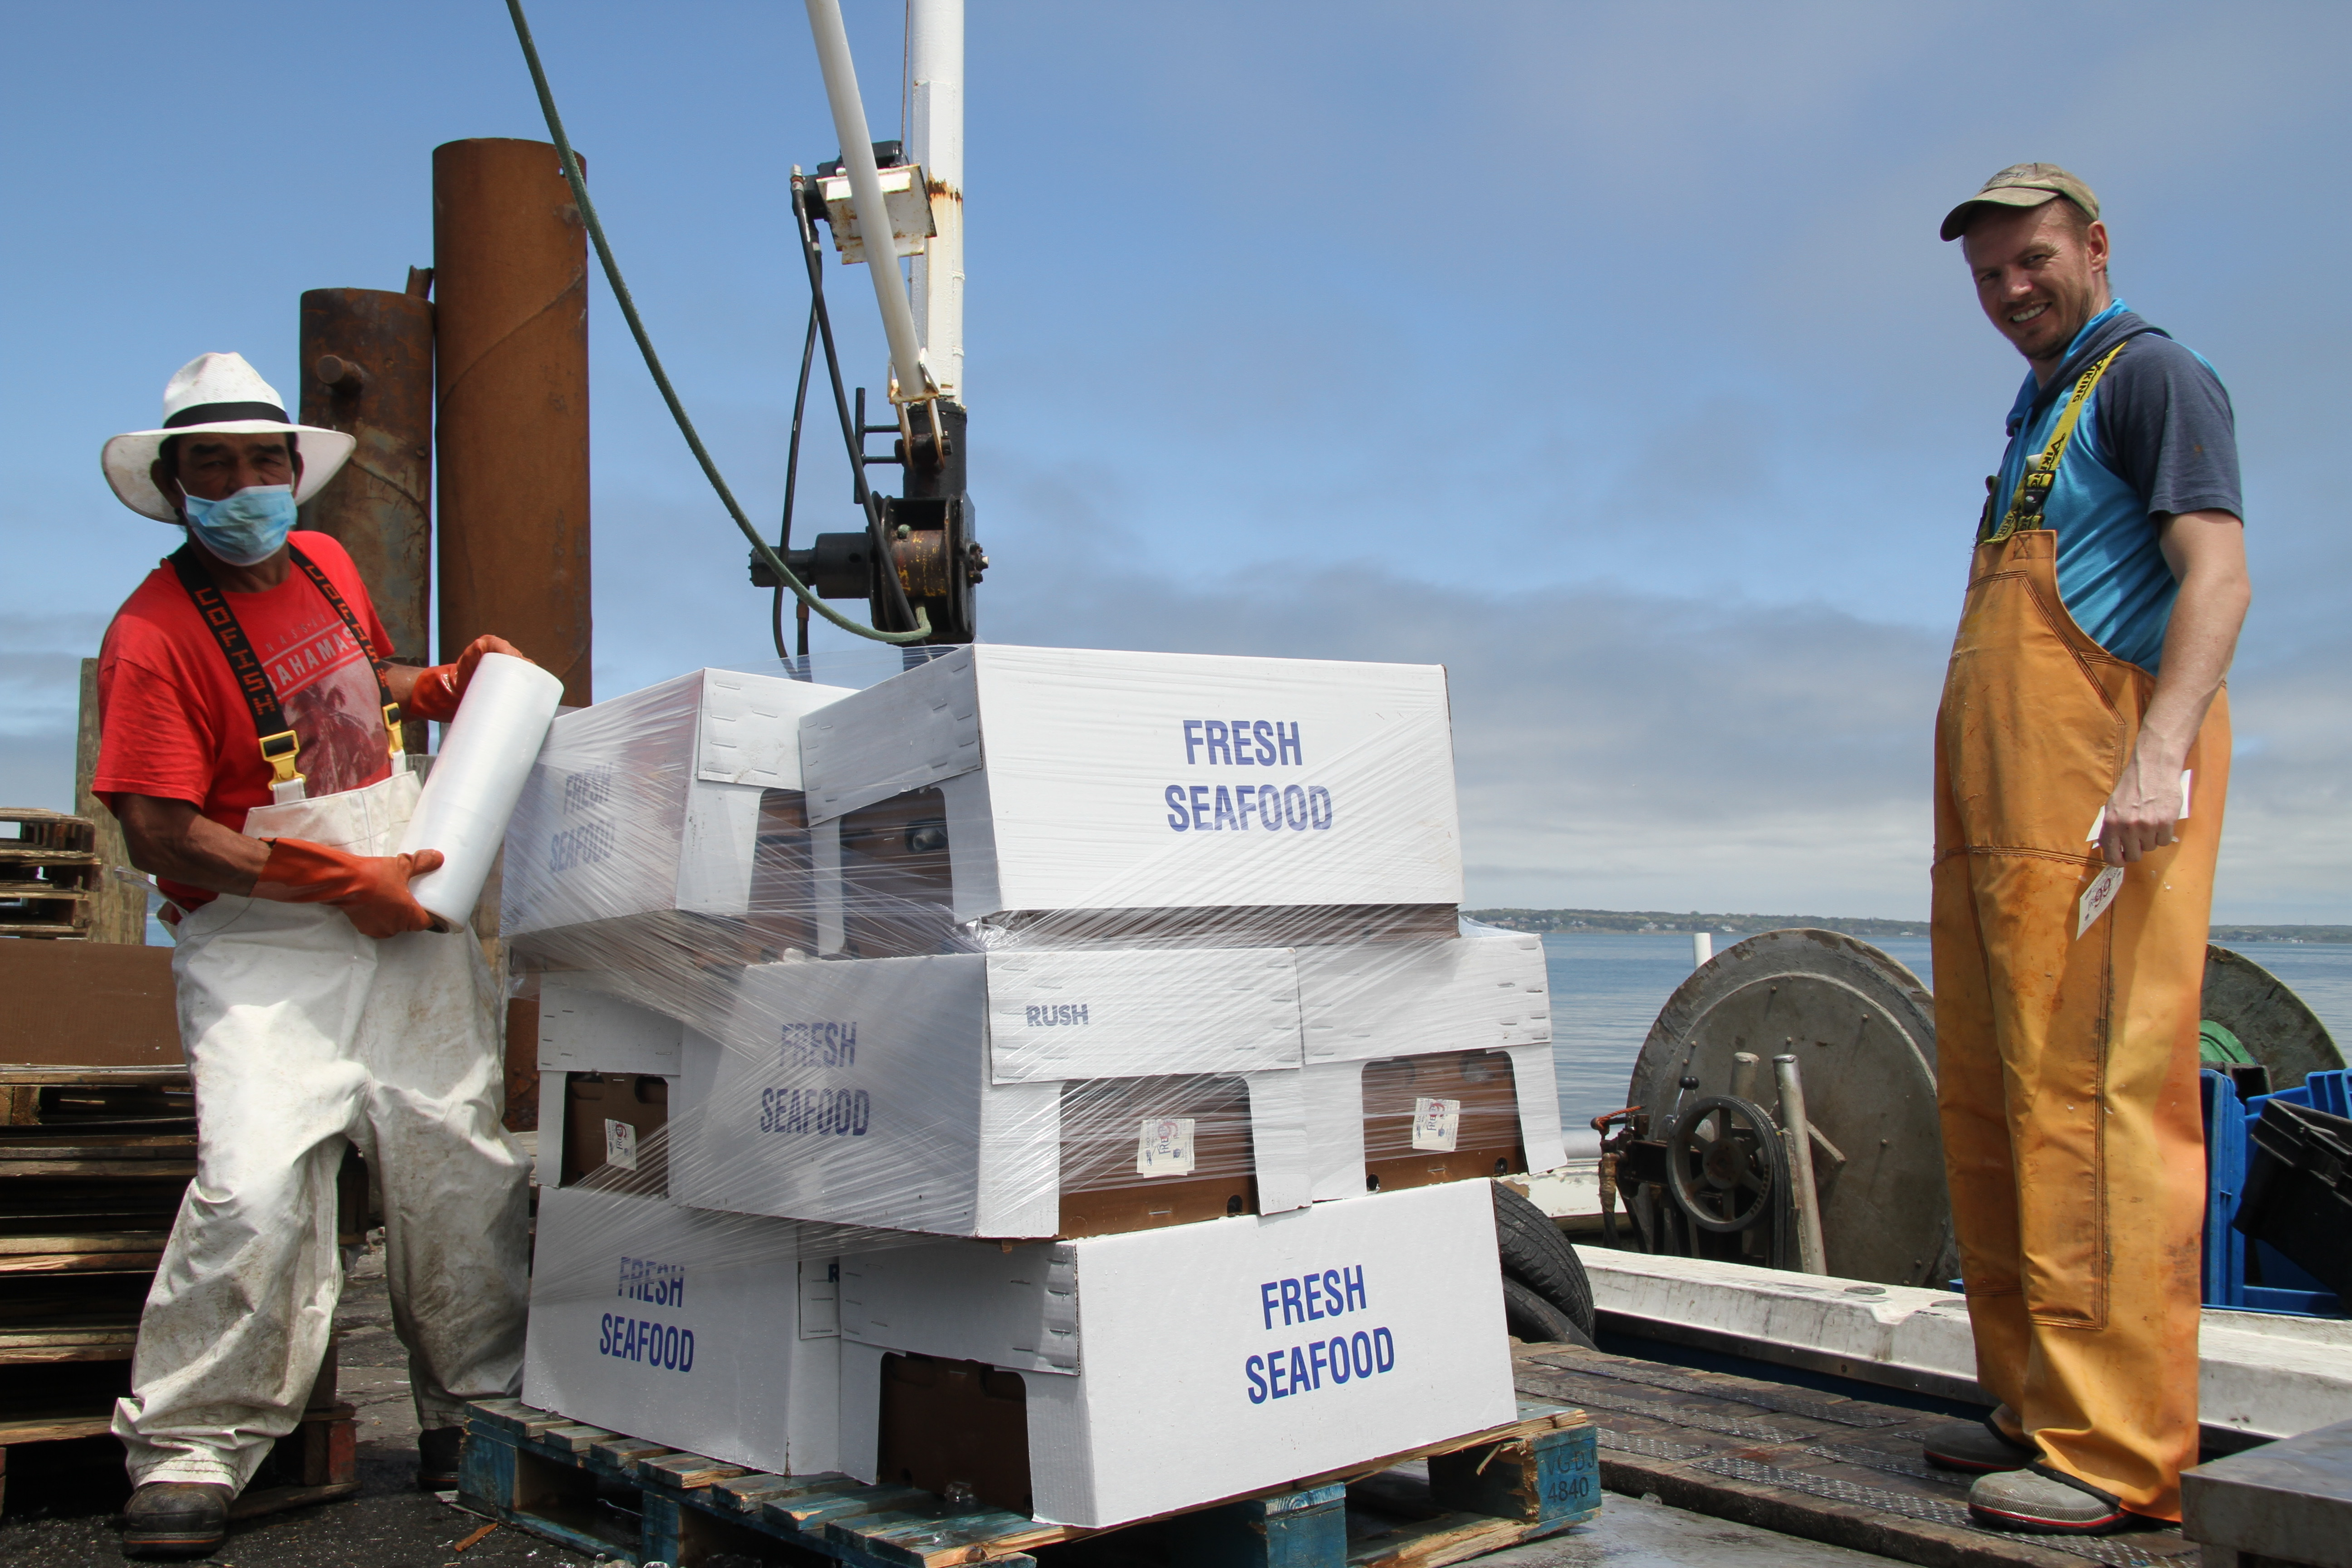 Commercial fishermen have diversified their outreach to markets and seafood retailers have thrived amid the coronavirus epidemic.